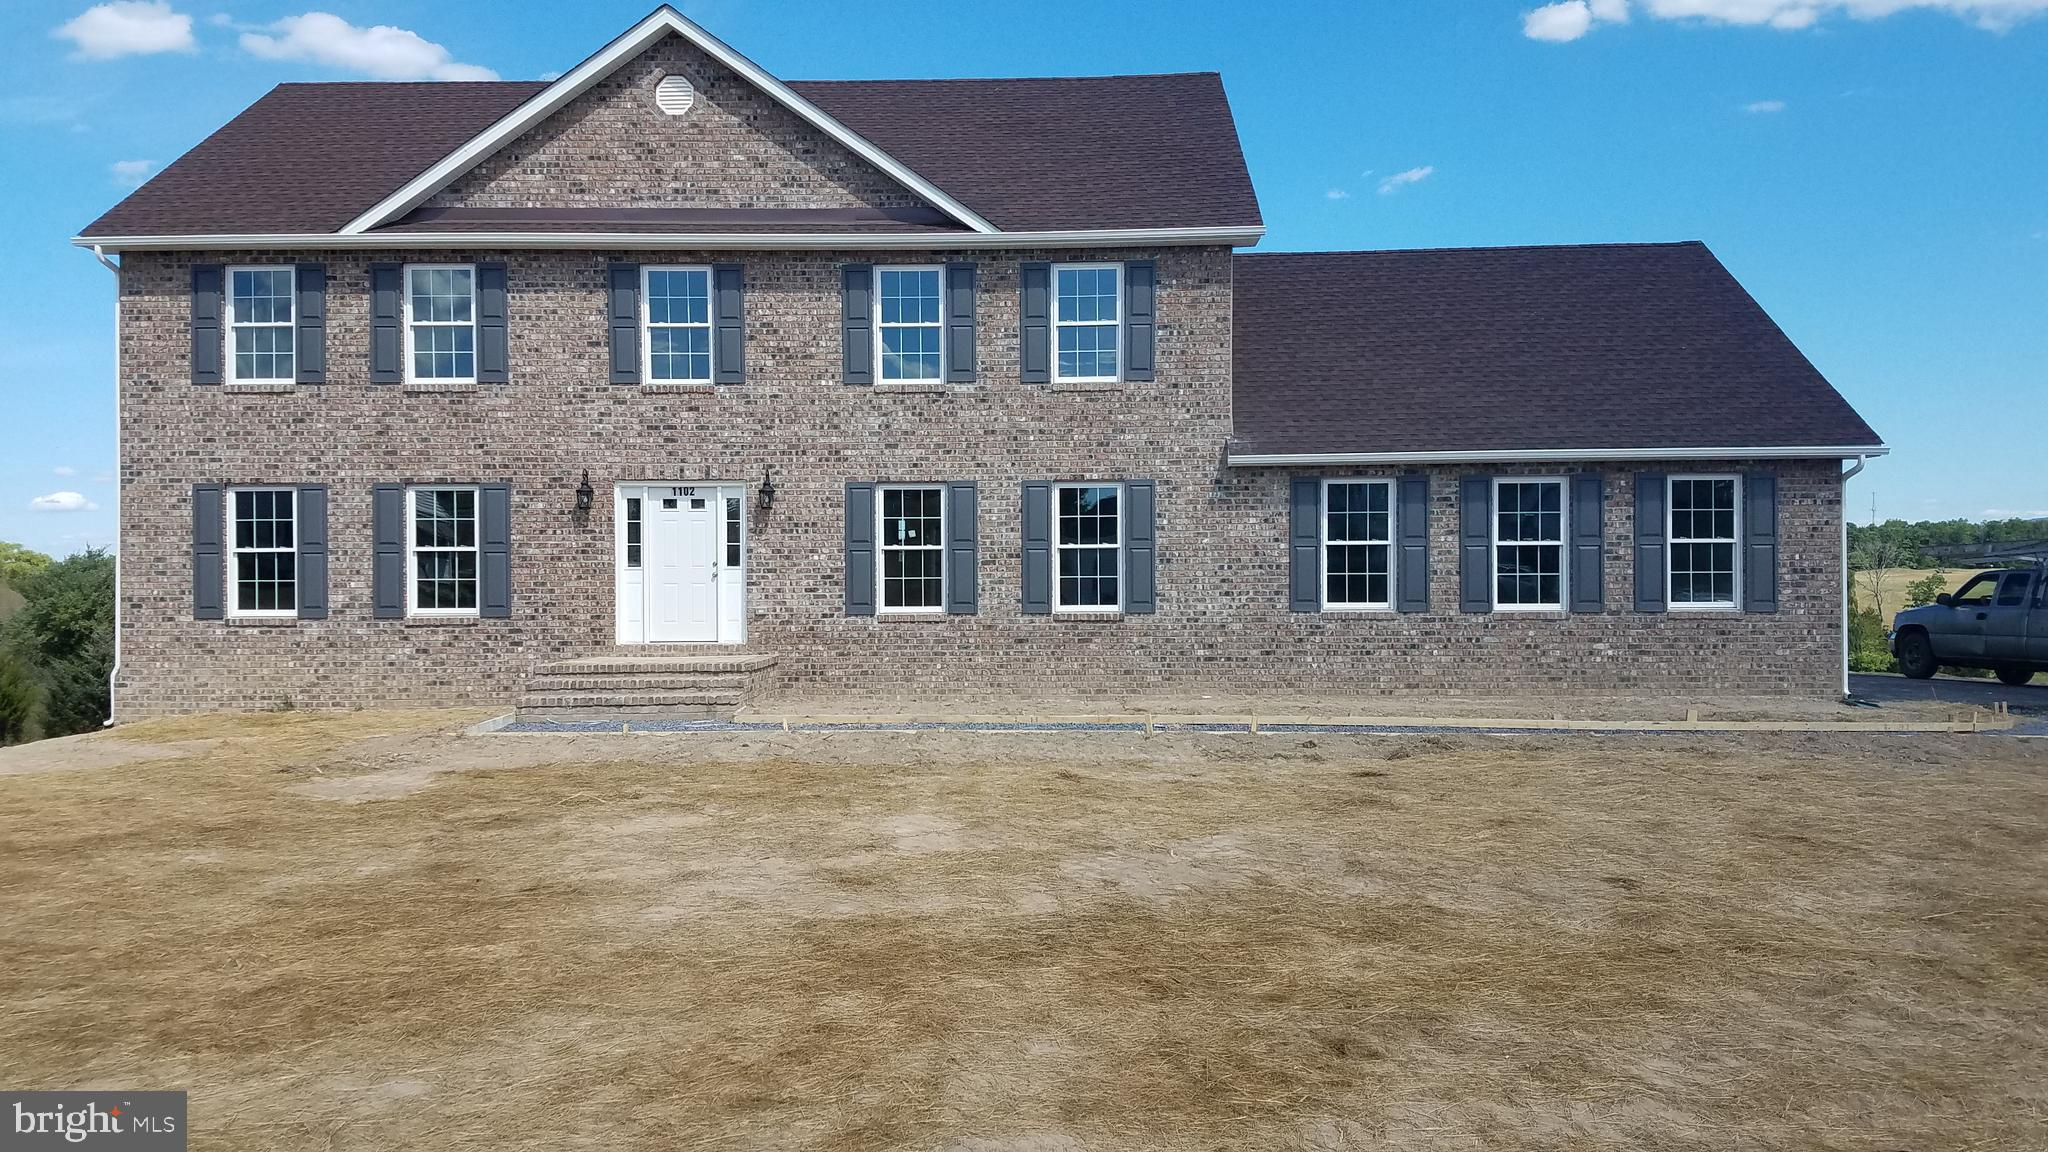 New Construction under way on 1 acre lot that backs to Golf Course.  Beautiful brick front colonial with approx. 2,800 finished sq ft and a full unfinished walkout basement with a large deck or patio.  Open floor plan with large kitchen peninsula overlooking family room with lots of windows. Kitchen will have granite counter tops and stainless steel appliances.  Hardwood floors throughout the main level which includes a formal dining room, living room, family room, bathroom and laundry room.  Very large master bedroom with large luxury bathroom that includes ceramic tile and over sized soaking tub.  All bedrooms have large closets. Community is located near I66, shopping, restaurants, wineries and breweries.  There are several golf courses within 5 miles. No HOA fee!